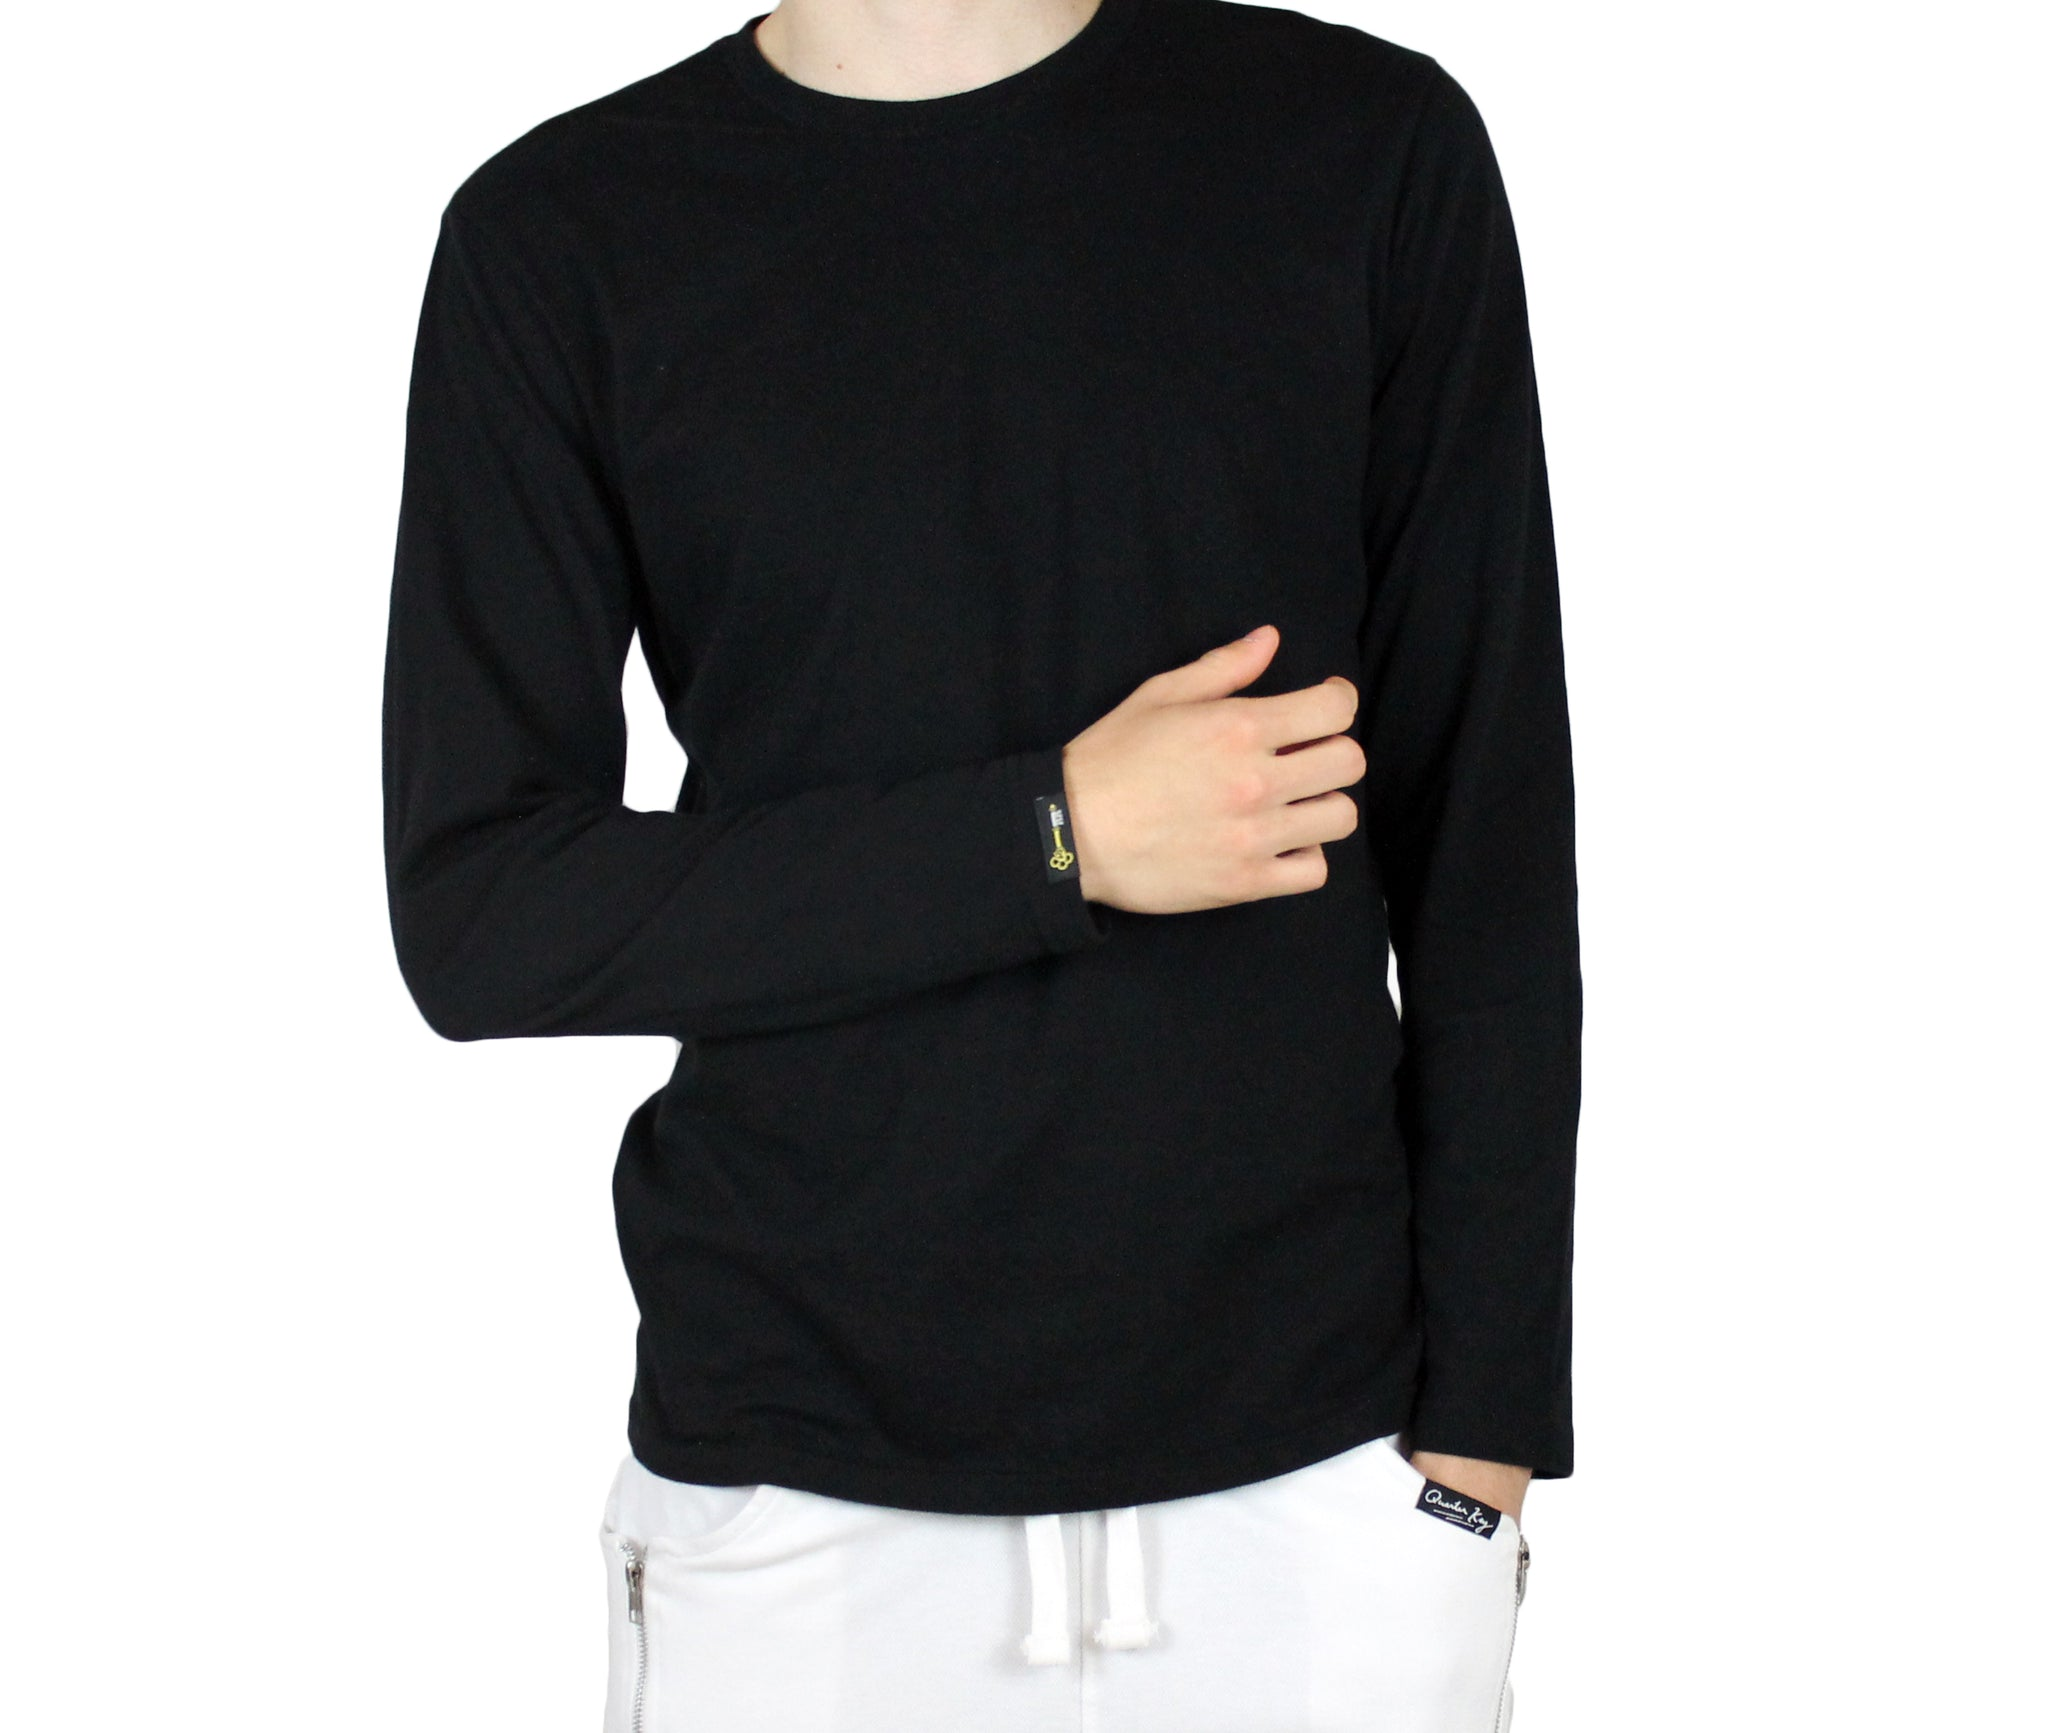 The Black Luxe Long Sleeve T-Shirt